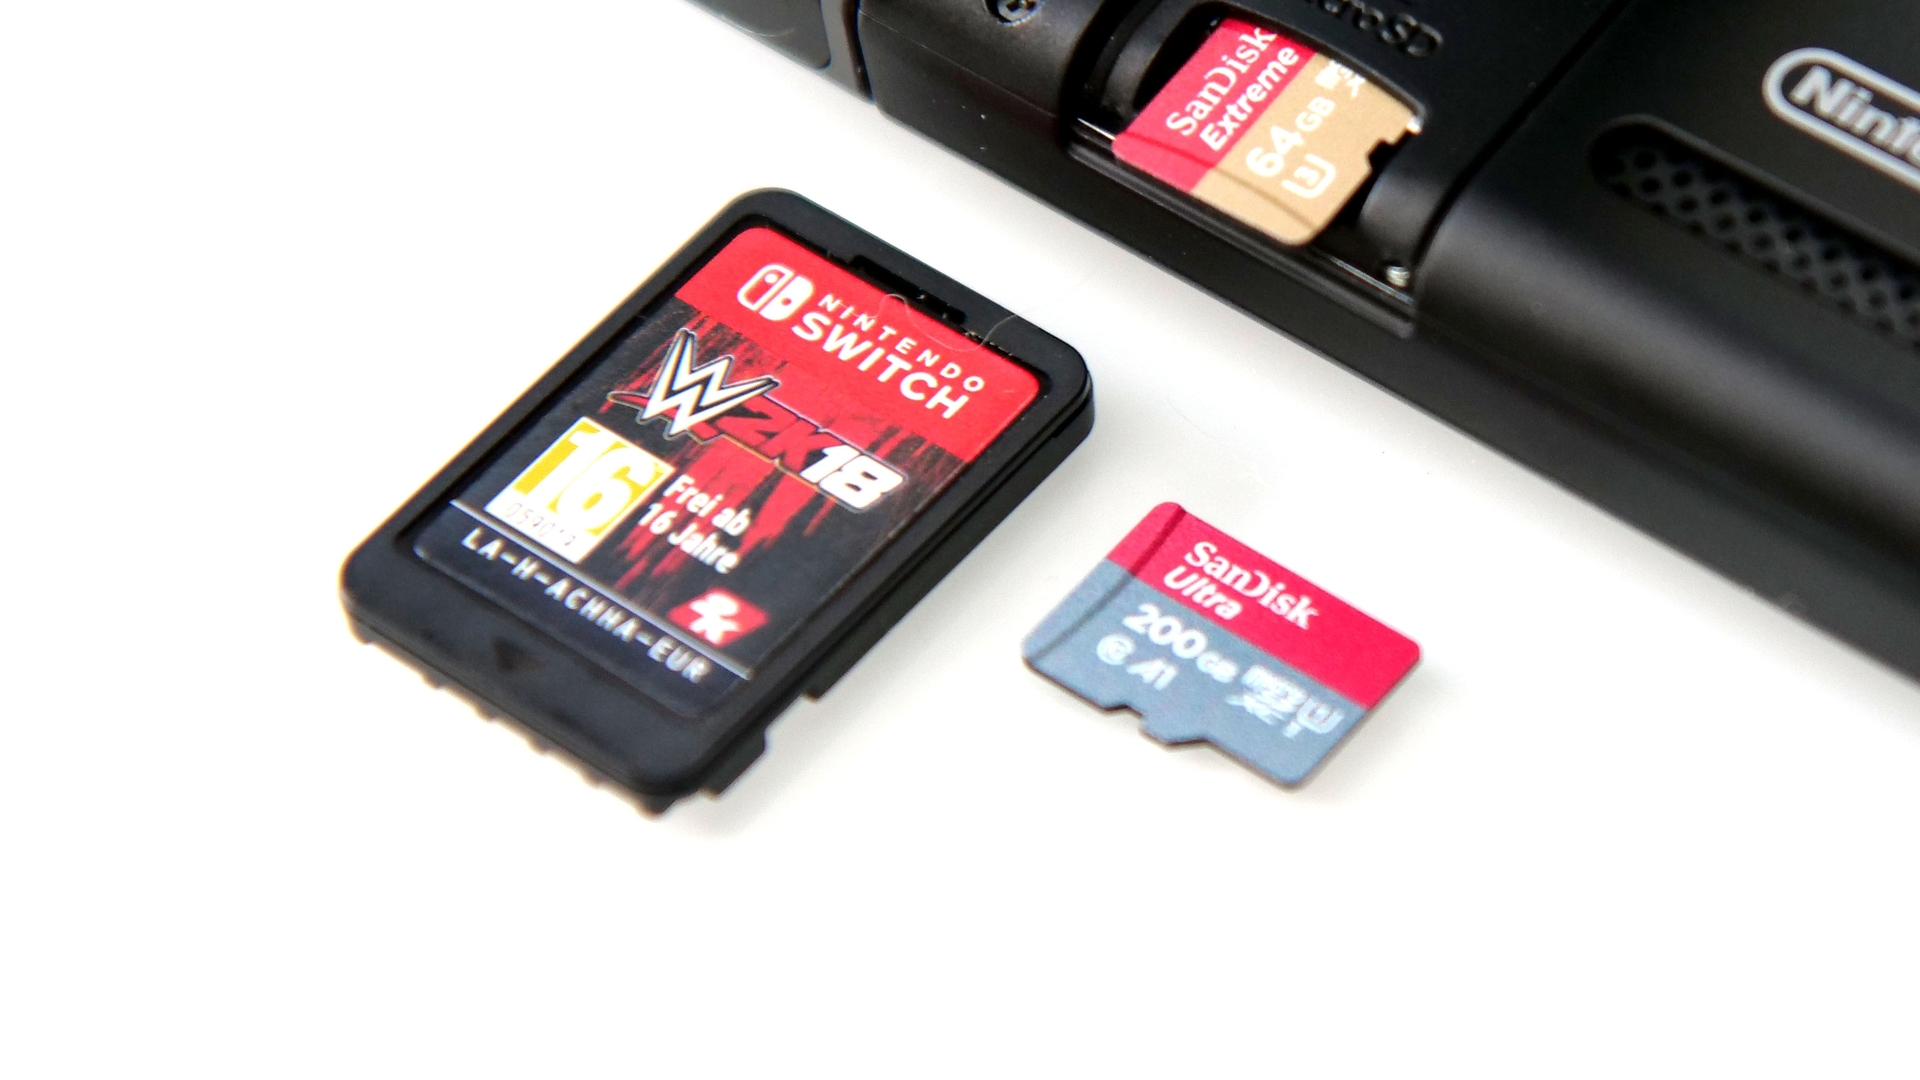 The Best Micro Sd Cards For Nintendo Switch Team Xtreem U3 64gb 90mb S